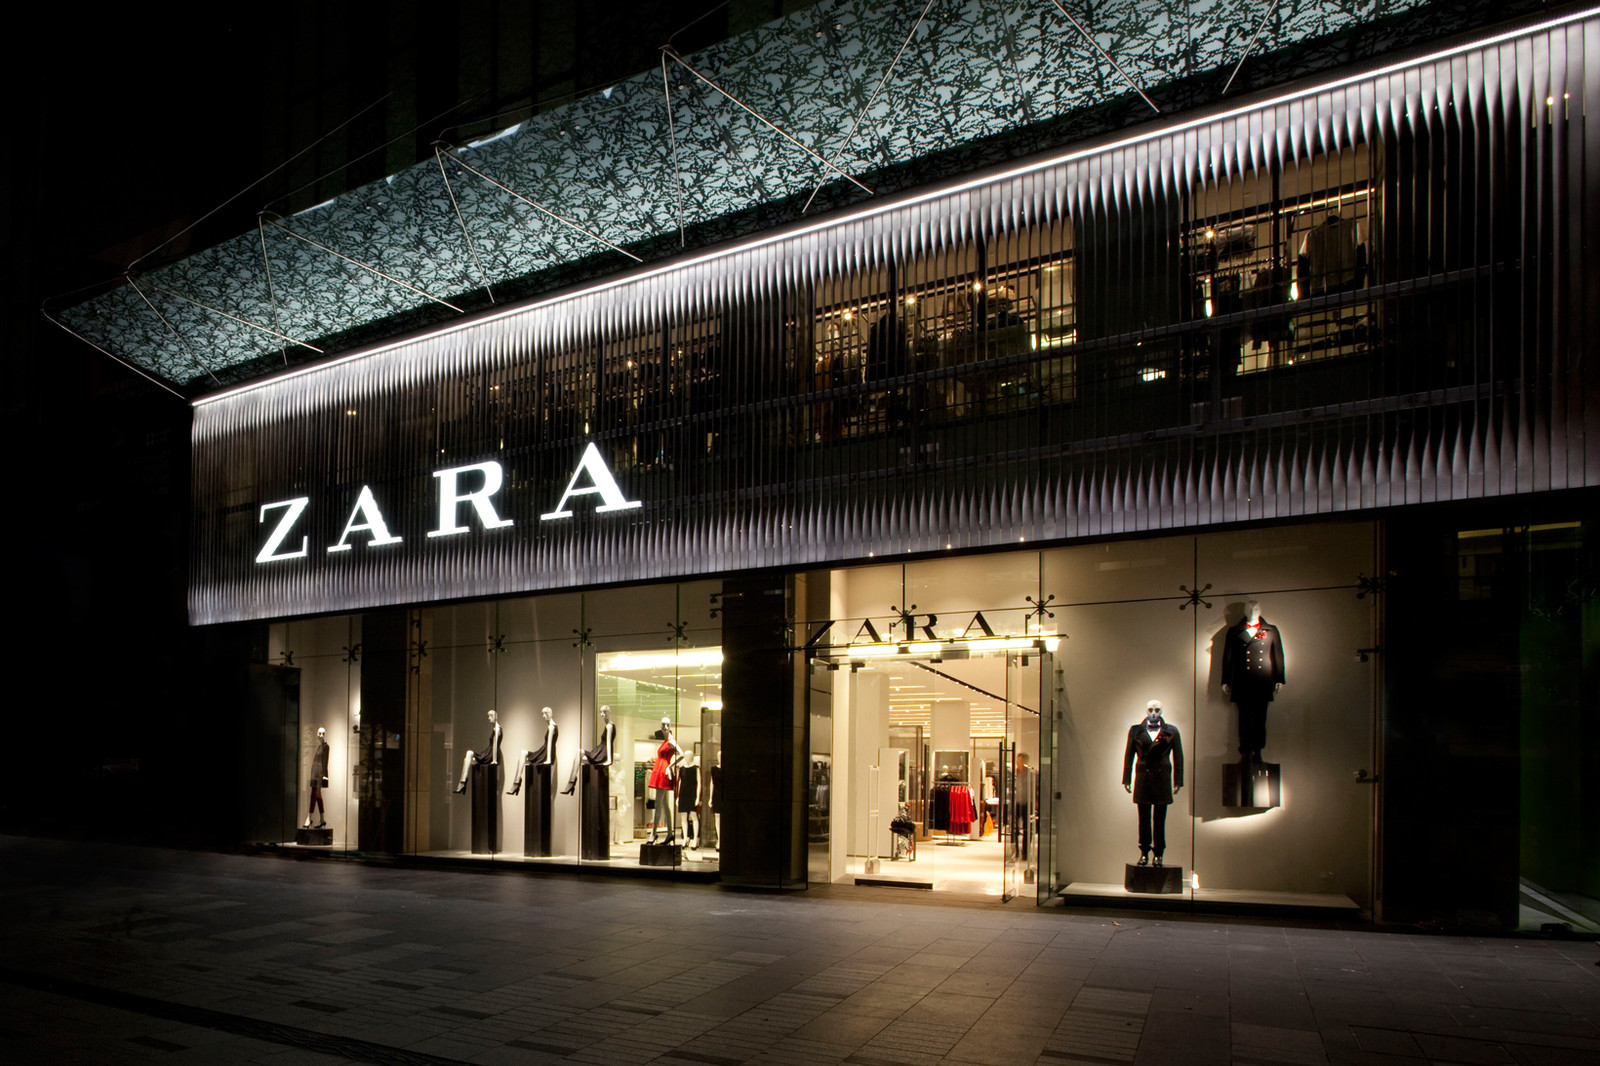 zara-deceptive-pricing-lawsuit-5-million-00